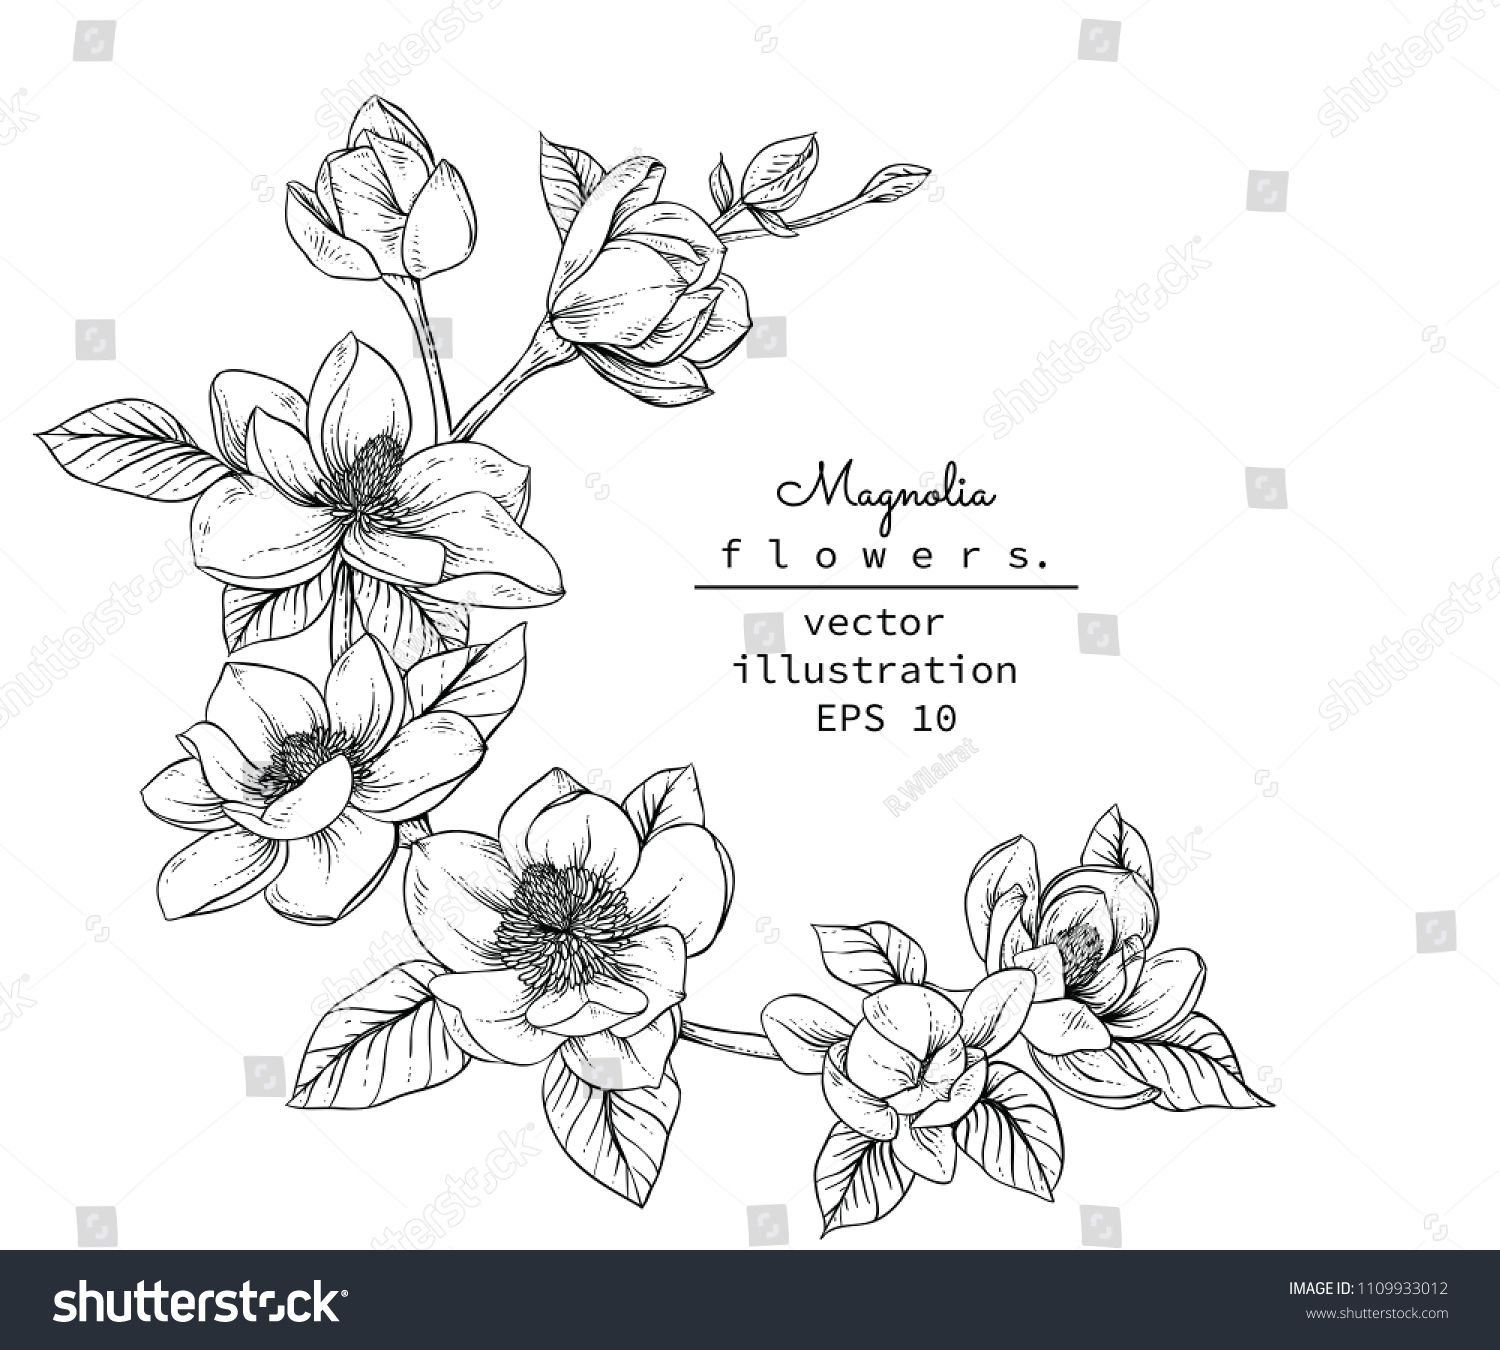 Sketch Floral Botany Collection Magnolia Flower Drawings Black And White With Line Art On White Backgrounds H Flower Drawing Flower Sketches Magnolia Flower